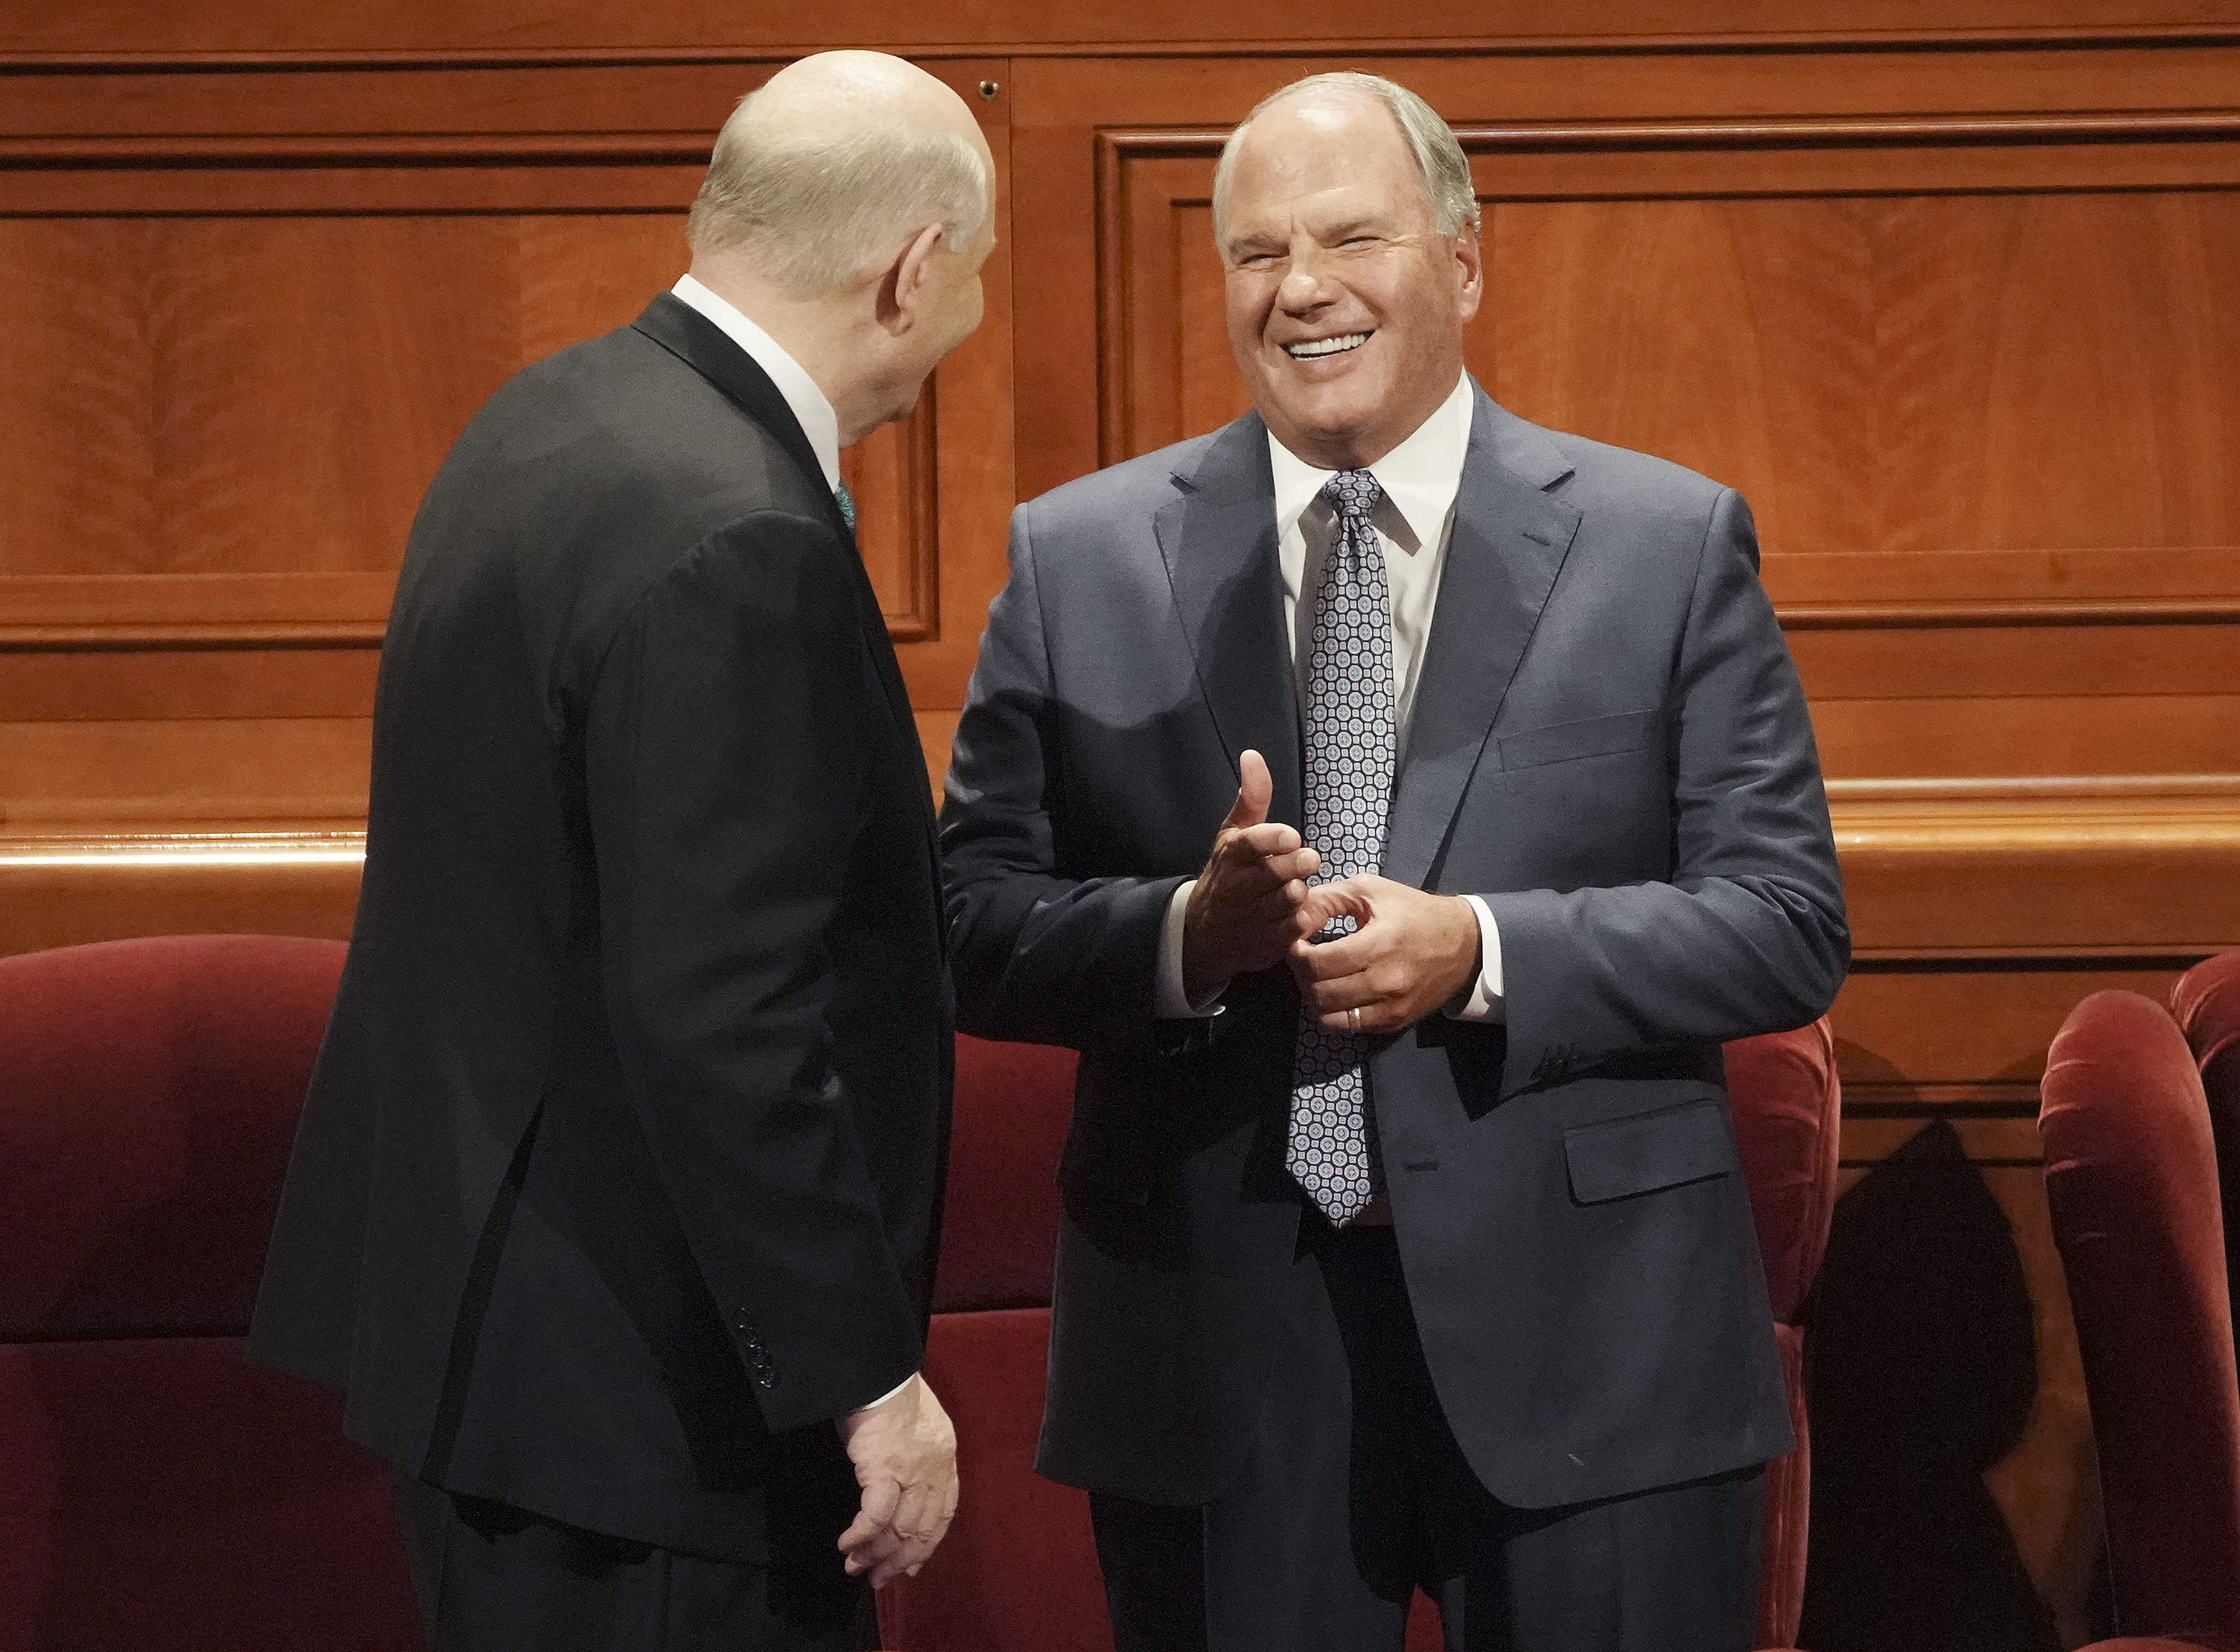 Elder Dale G. Renlund and Elder Ronald A. Rasband of the Quorum of the Twelve Apostles talk prior to the Saturday afternoon session of the 189th Semiannual General Conference of The Church of Jesus Christ of Latter-day Saints in the Conference Center in Salt Lake City on Saturday, Oct. 5, 2019.